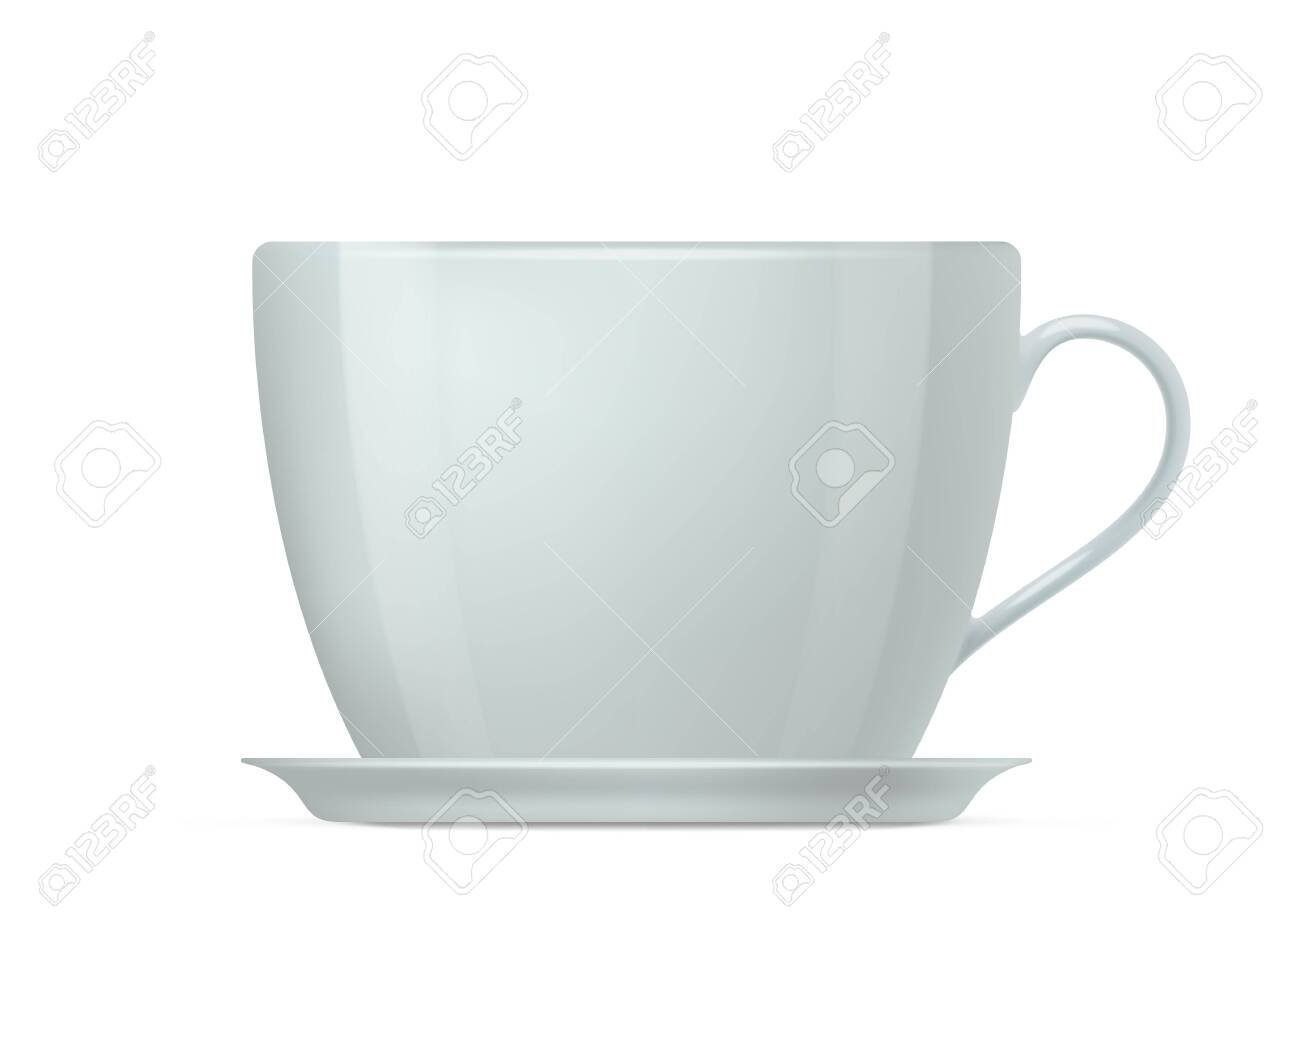 Realistic White Coffee Cup And Saucer Side View Of White Ceramic Royalty Free Cliparts Vectors And Stock Illustration Image 153912598